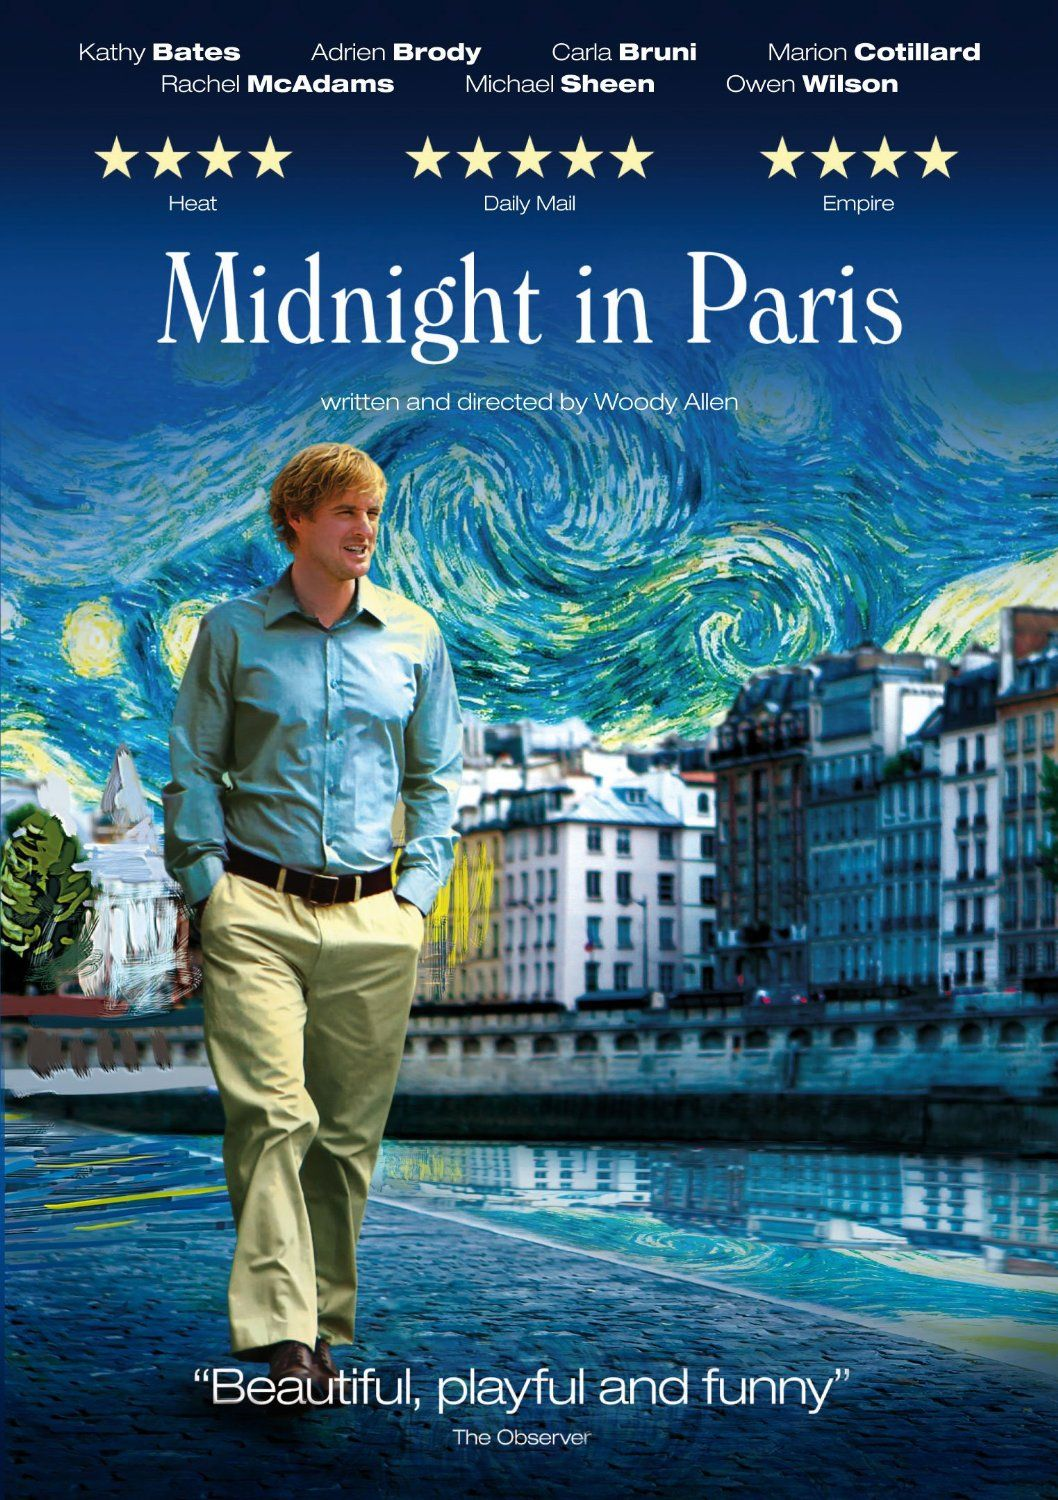 Midnight in Paris Wallpapers - Top Free Midnight in Paris ...